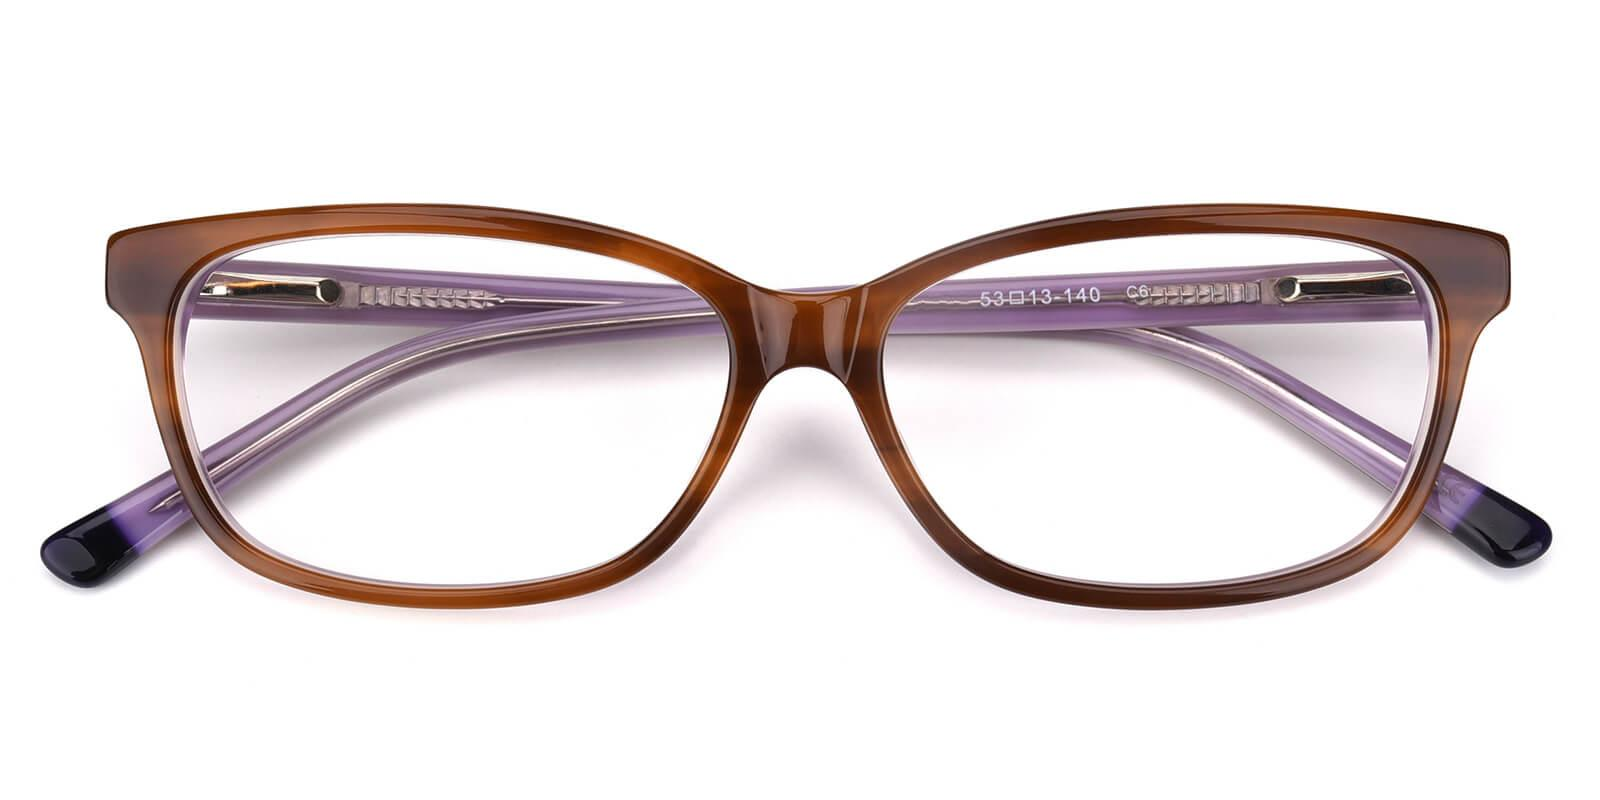 Zion-Brown-Cat-Acetate-Eyeglasses-detail